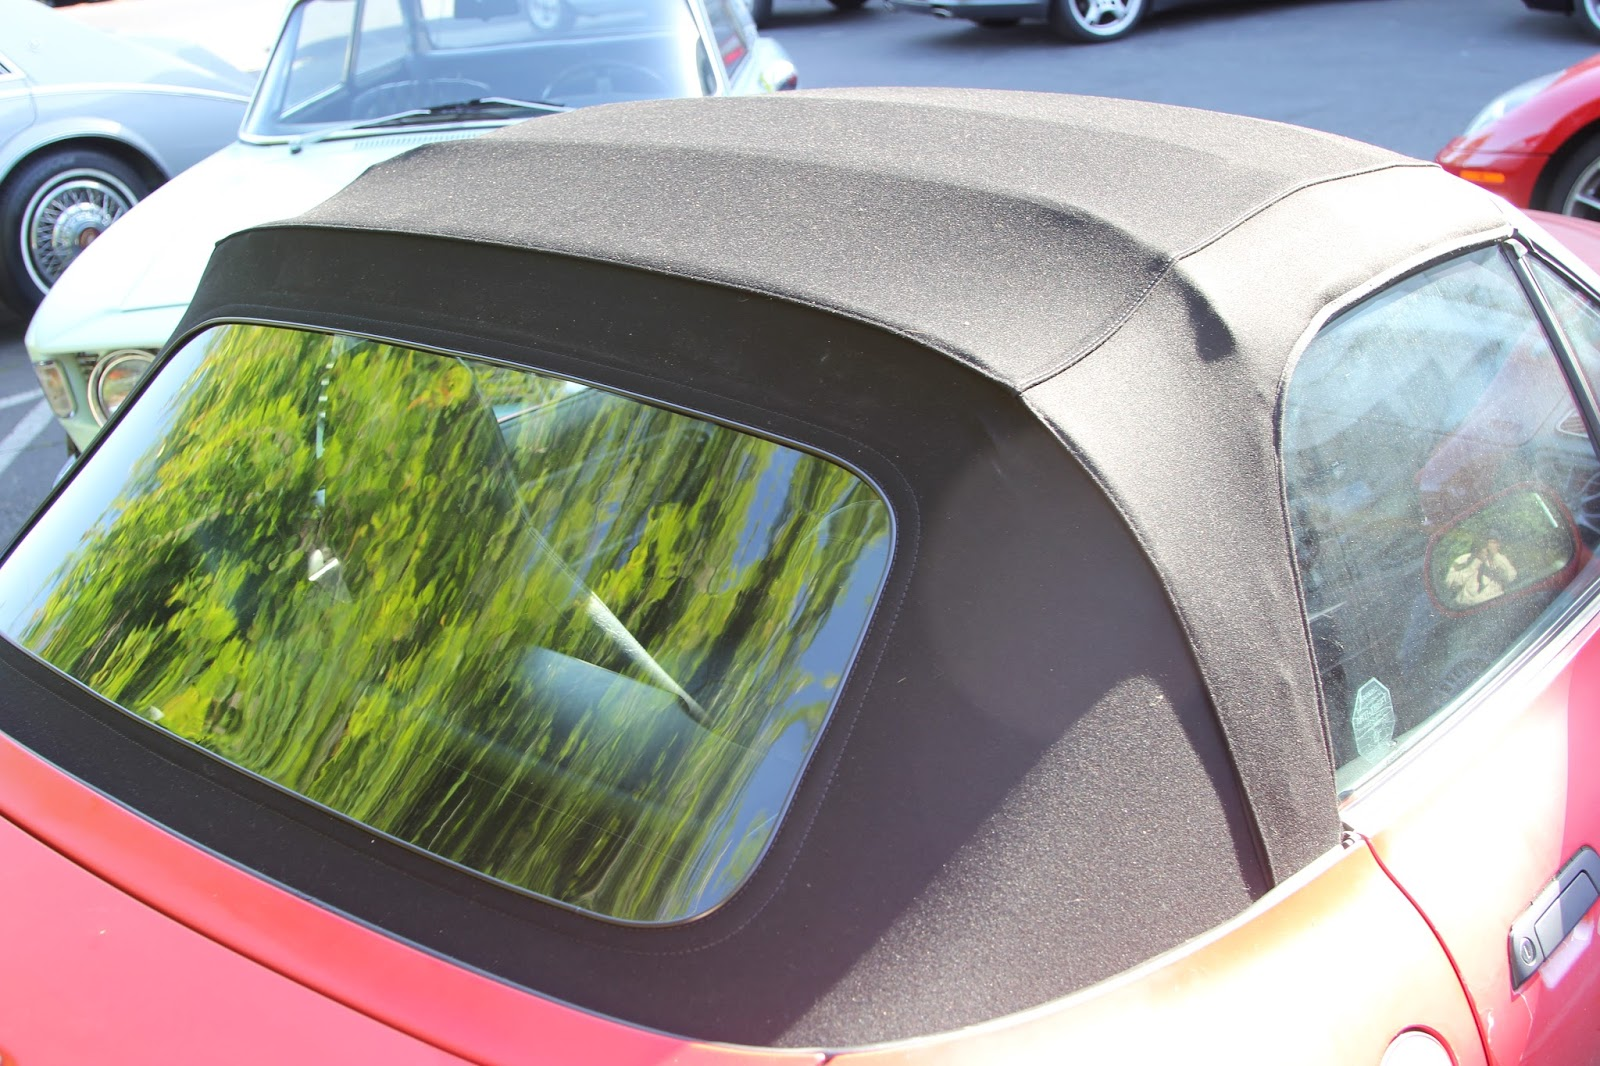 This Project We Have Replaced The Convertible Top And Rear Window On Bmw Z3